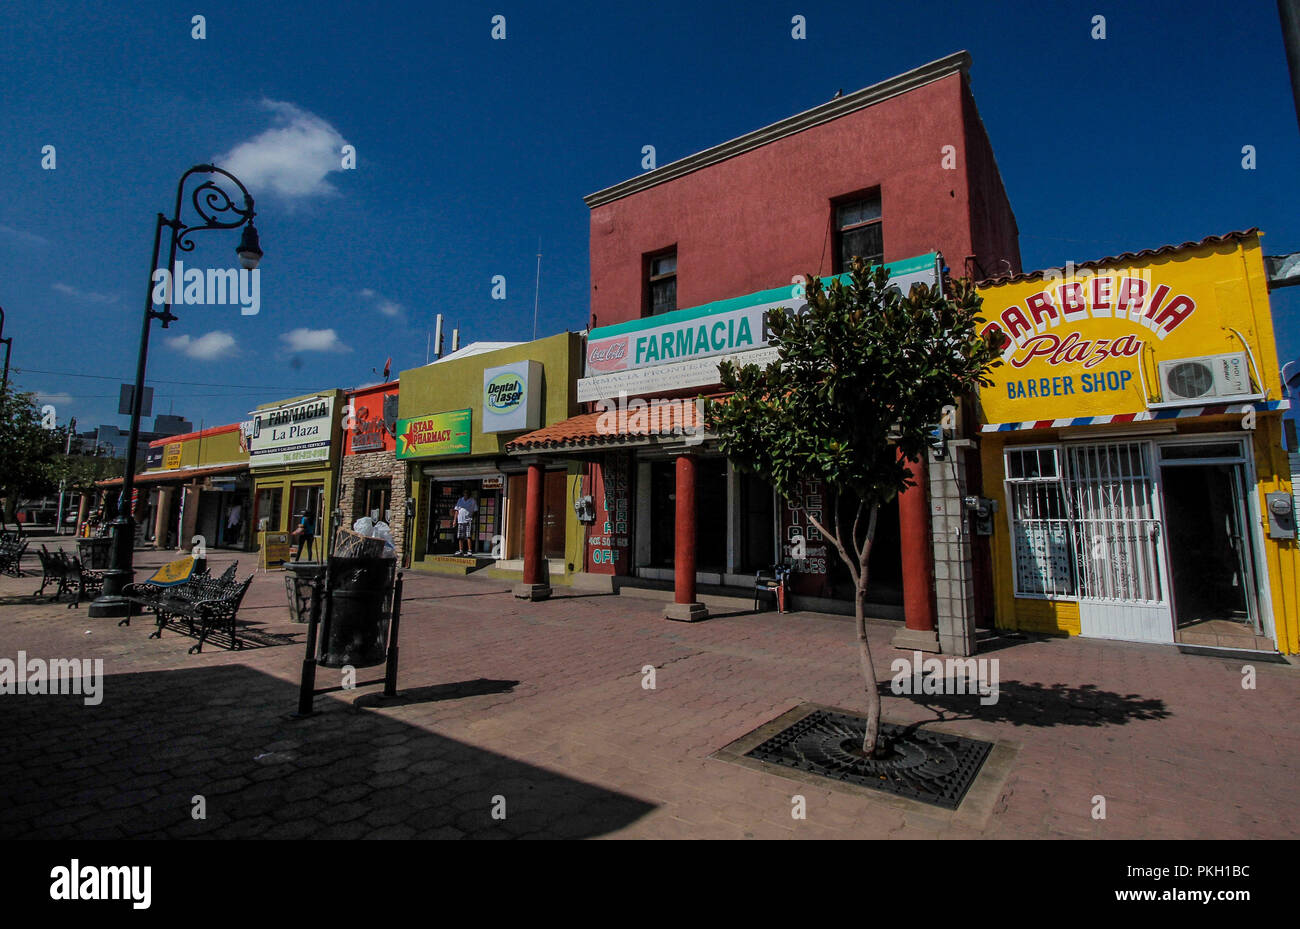 Daily Life And Around The Wall In The Border City Of Nogales Sonora Mexico Arizona Luisgutierrez Nortephoto Com Stock Photo Alamy